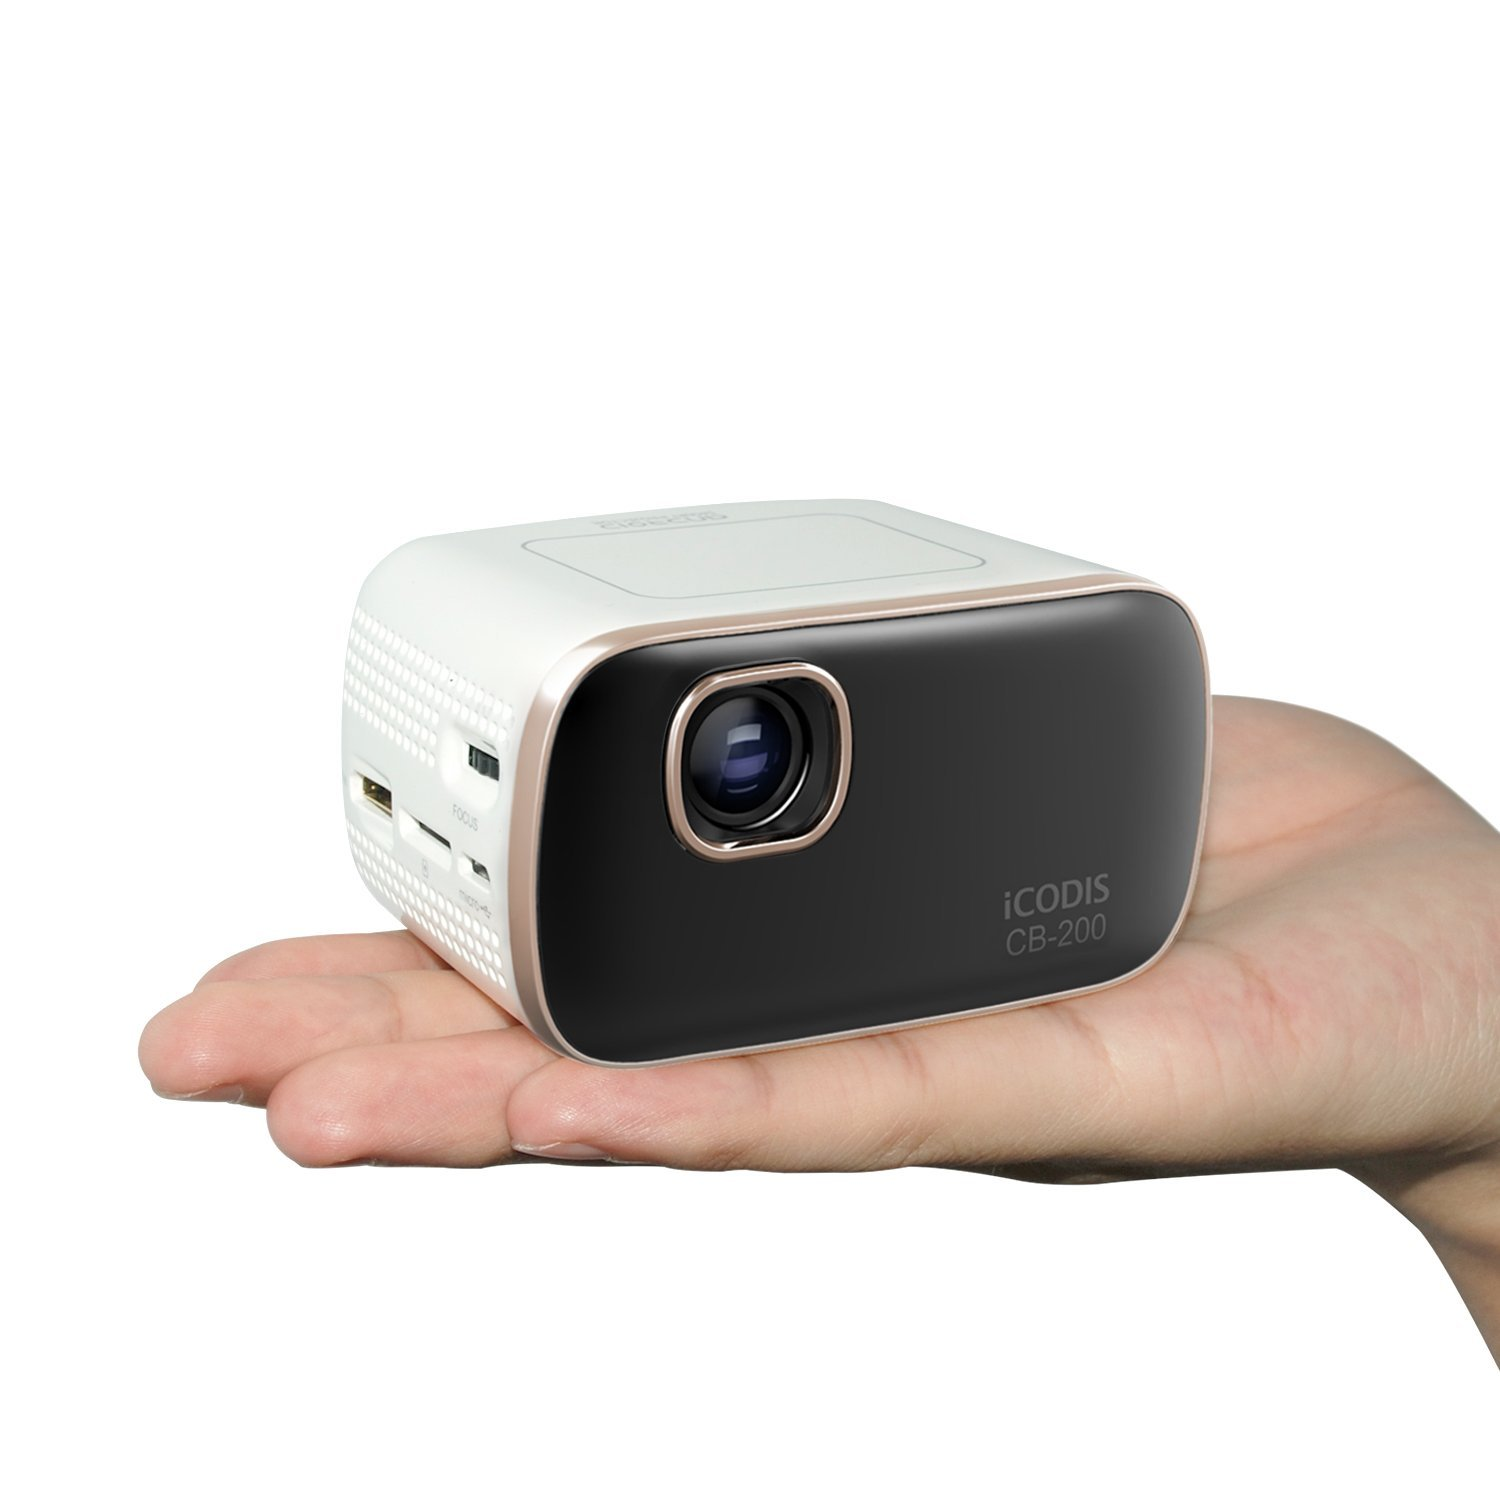 Icodis cb 200 pico mobile projector energy healing stone for Dlp portable projector